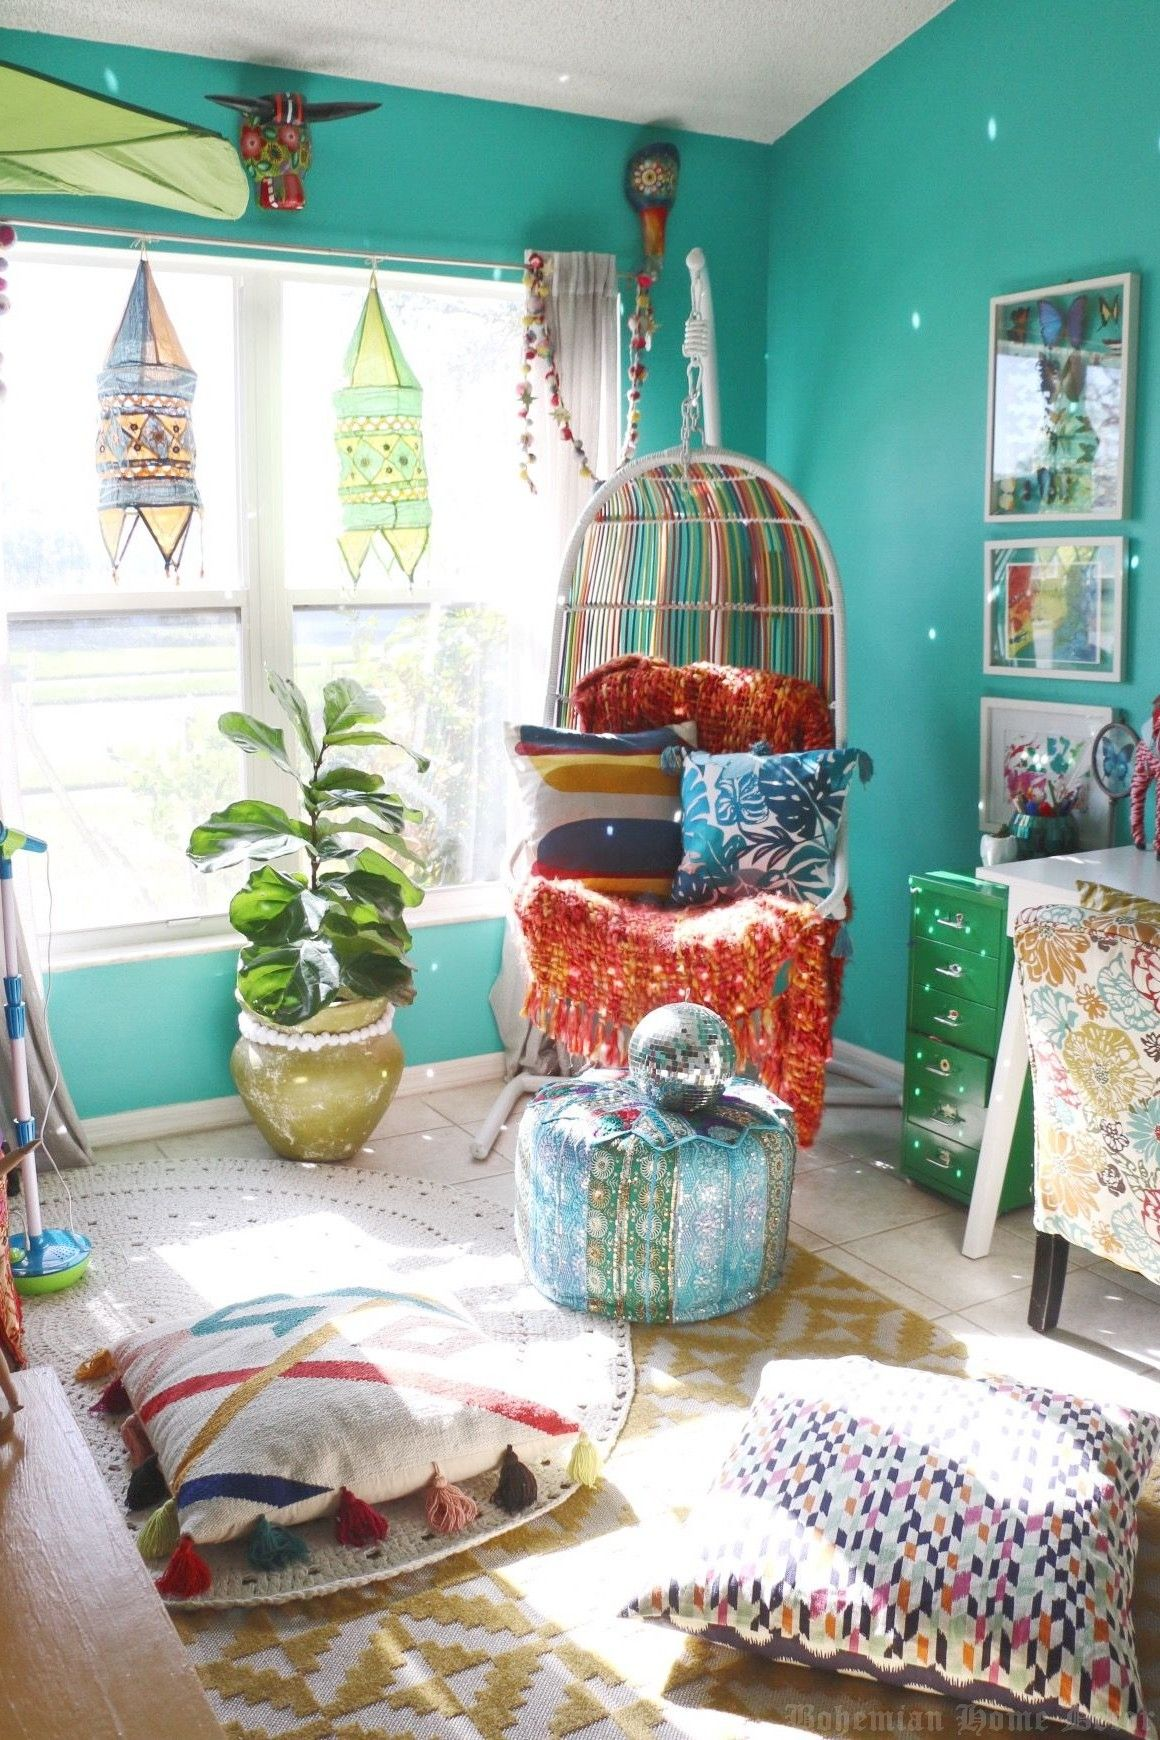 Bohemian Home Decor Changes: 5 Actionable Tips